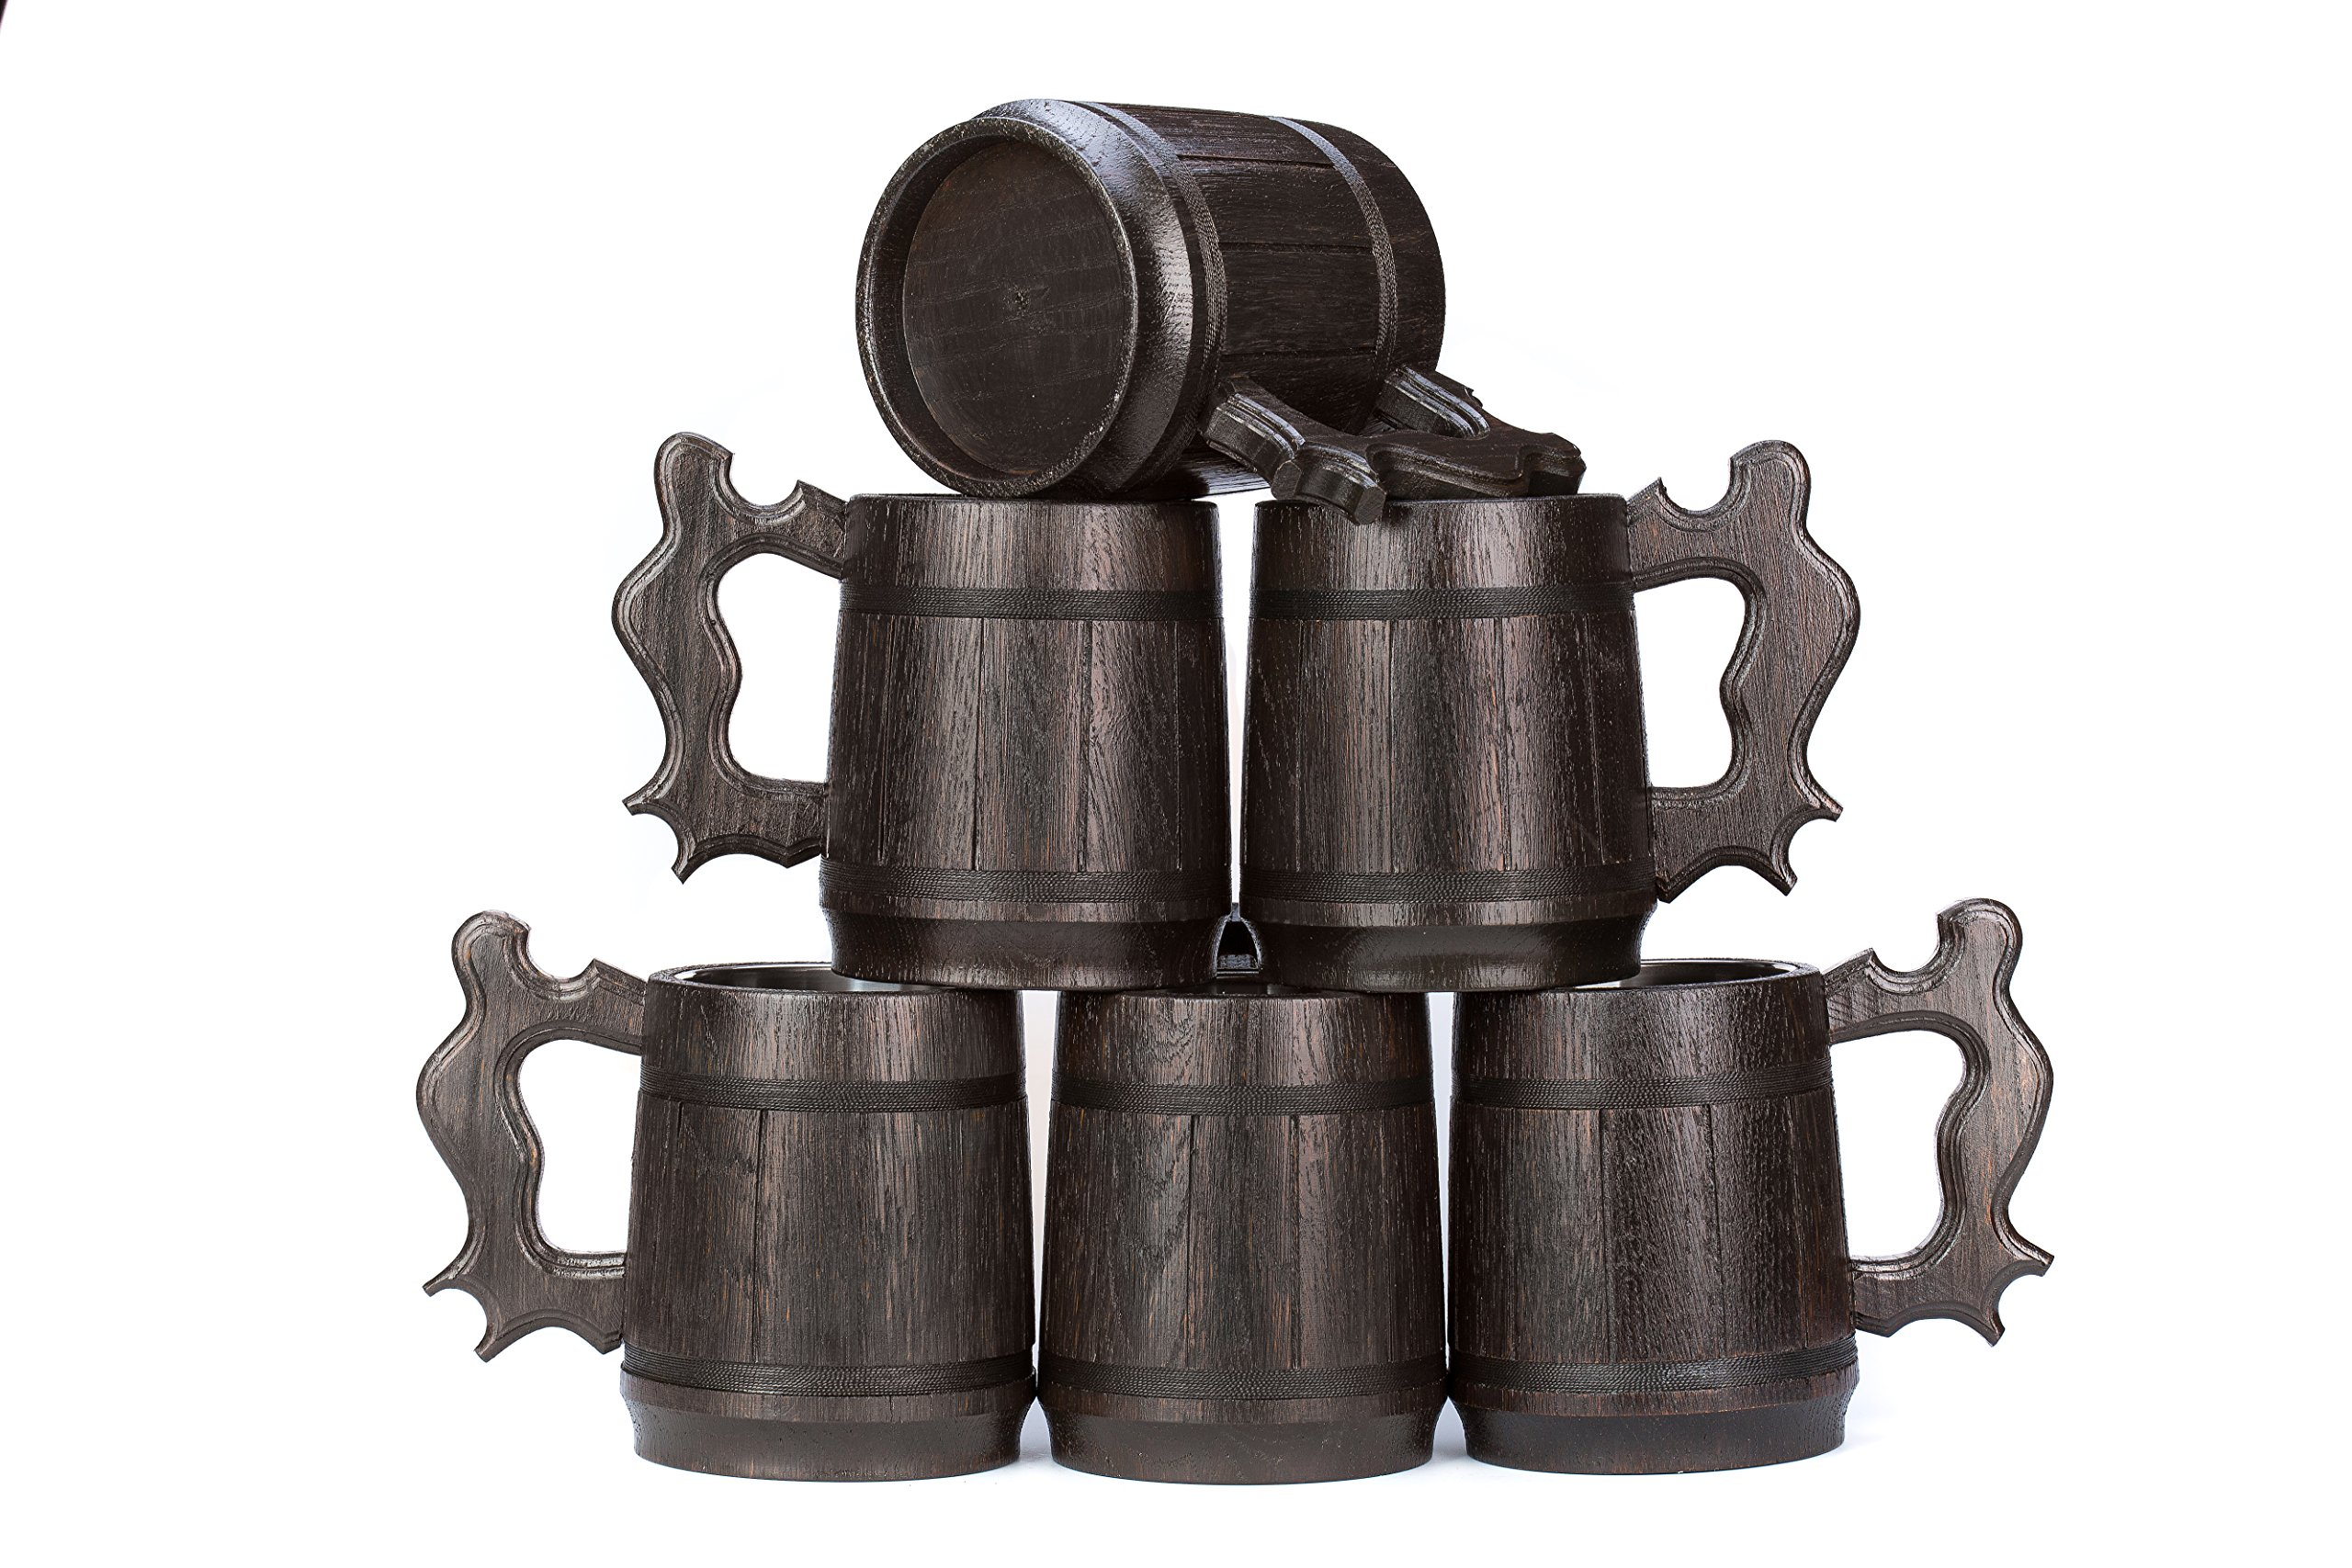 Set of 6 Beer Mugs / Gifts Set of 6 Wooden Beer Mugs / Set of 6 Mugs By WoodenGifts - 0.6 Litres Or 20oz Wooden Mugs - Set of 6 Coffee Mugs - Set of 6 Stainless Steel Cups (Set of 6 Mugs)